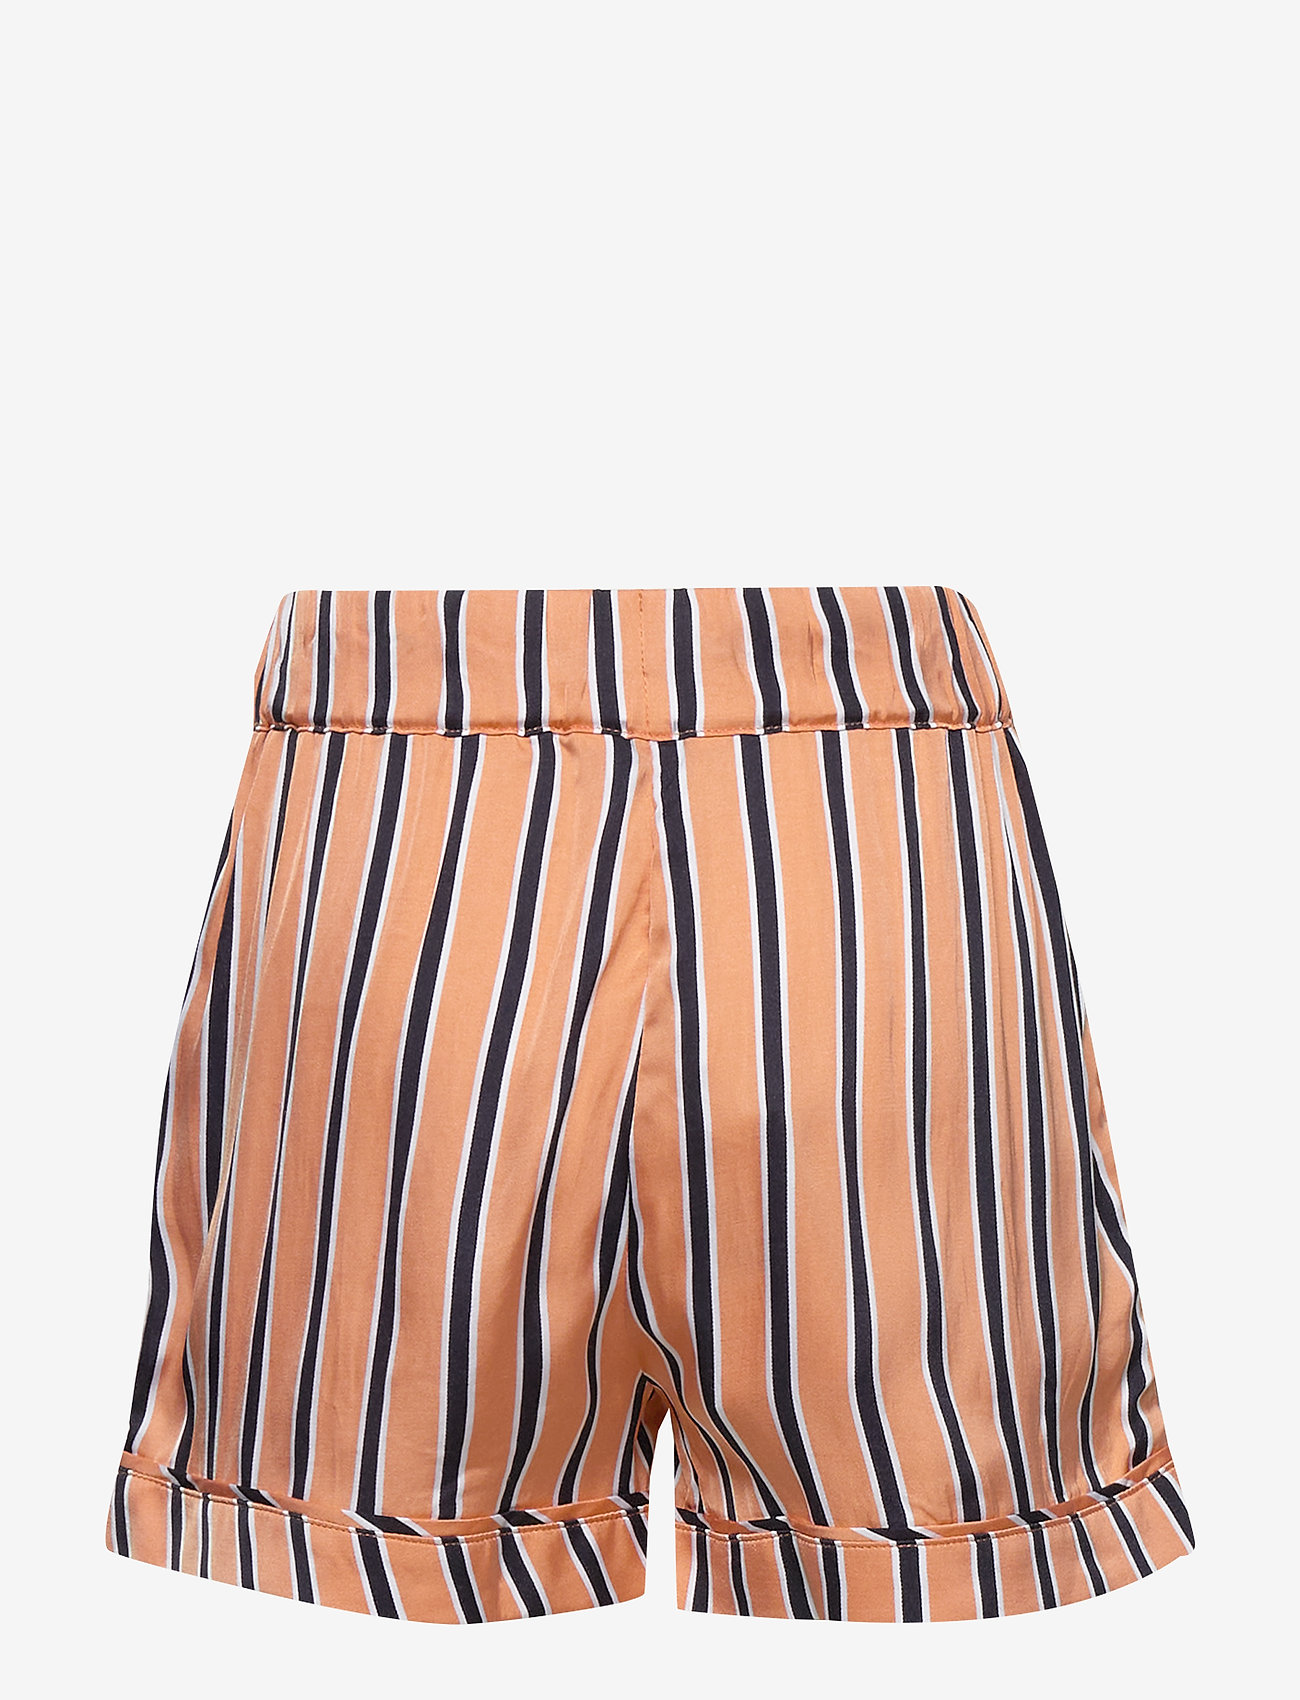 Tommy Hilfiger - RESORT STRIPE SHORTS - shorts - melon orange/ twilight navy - 1